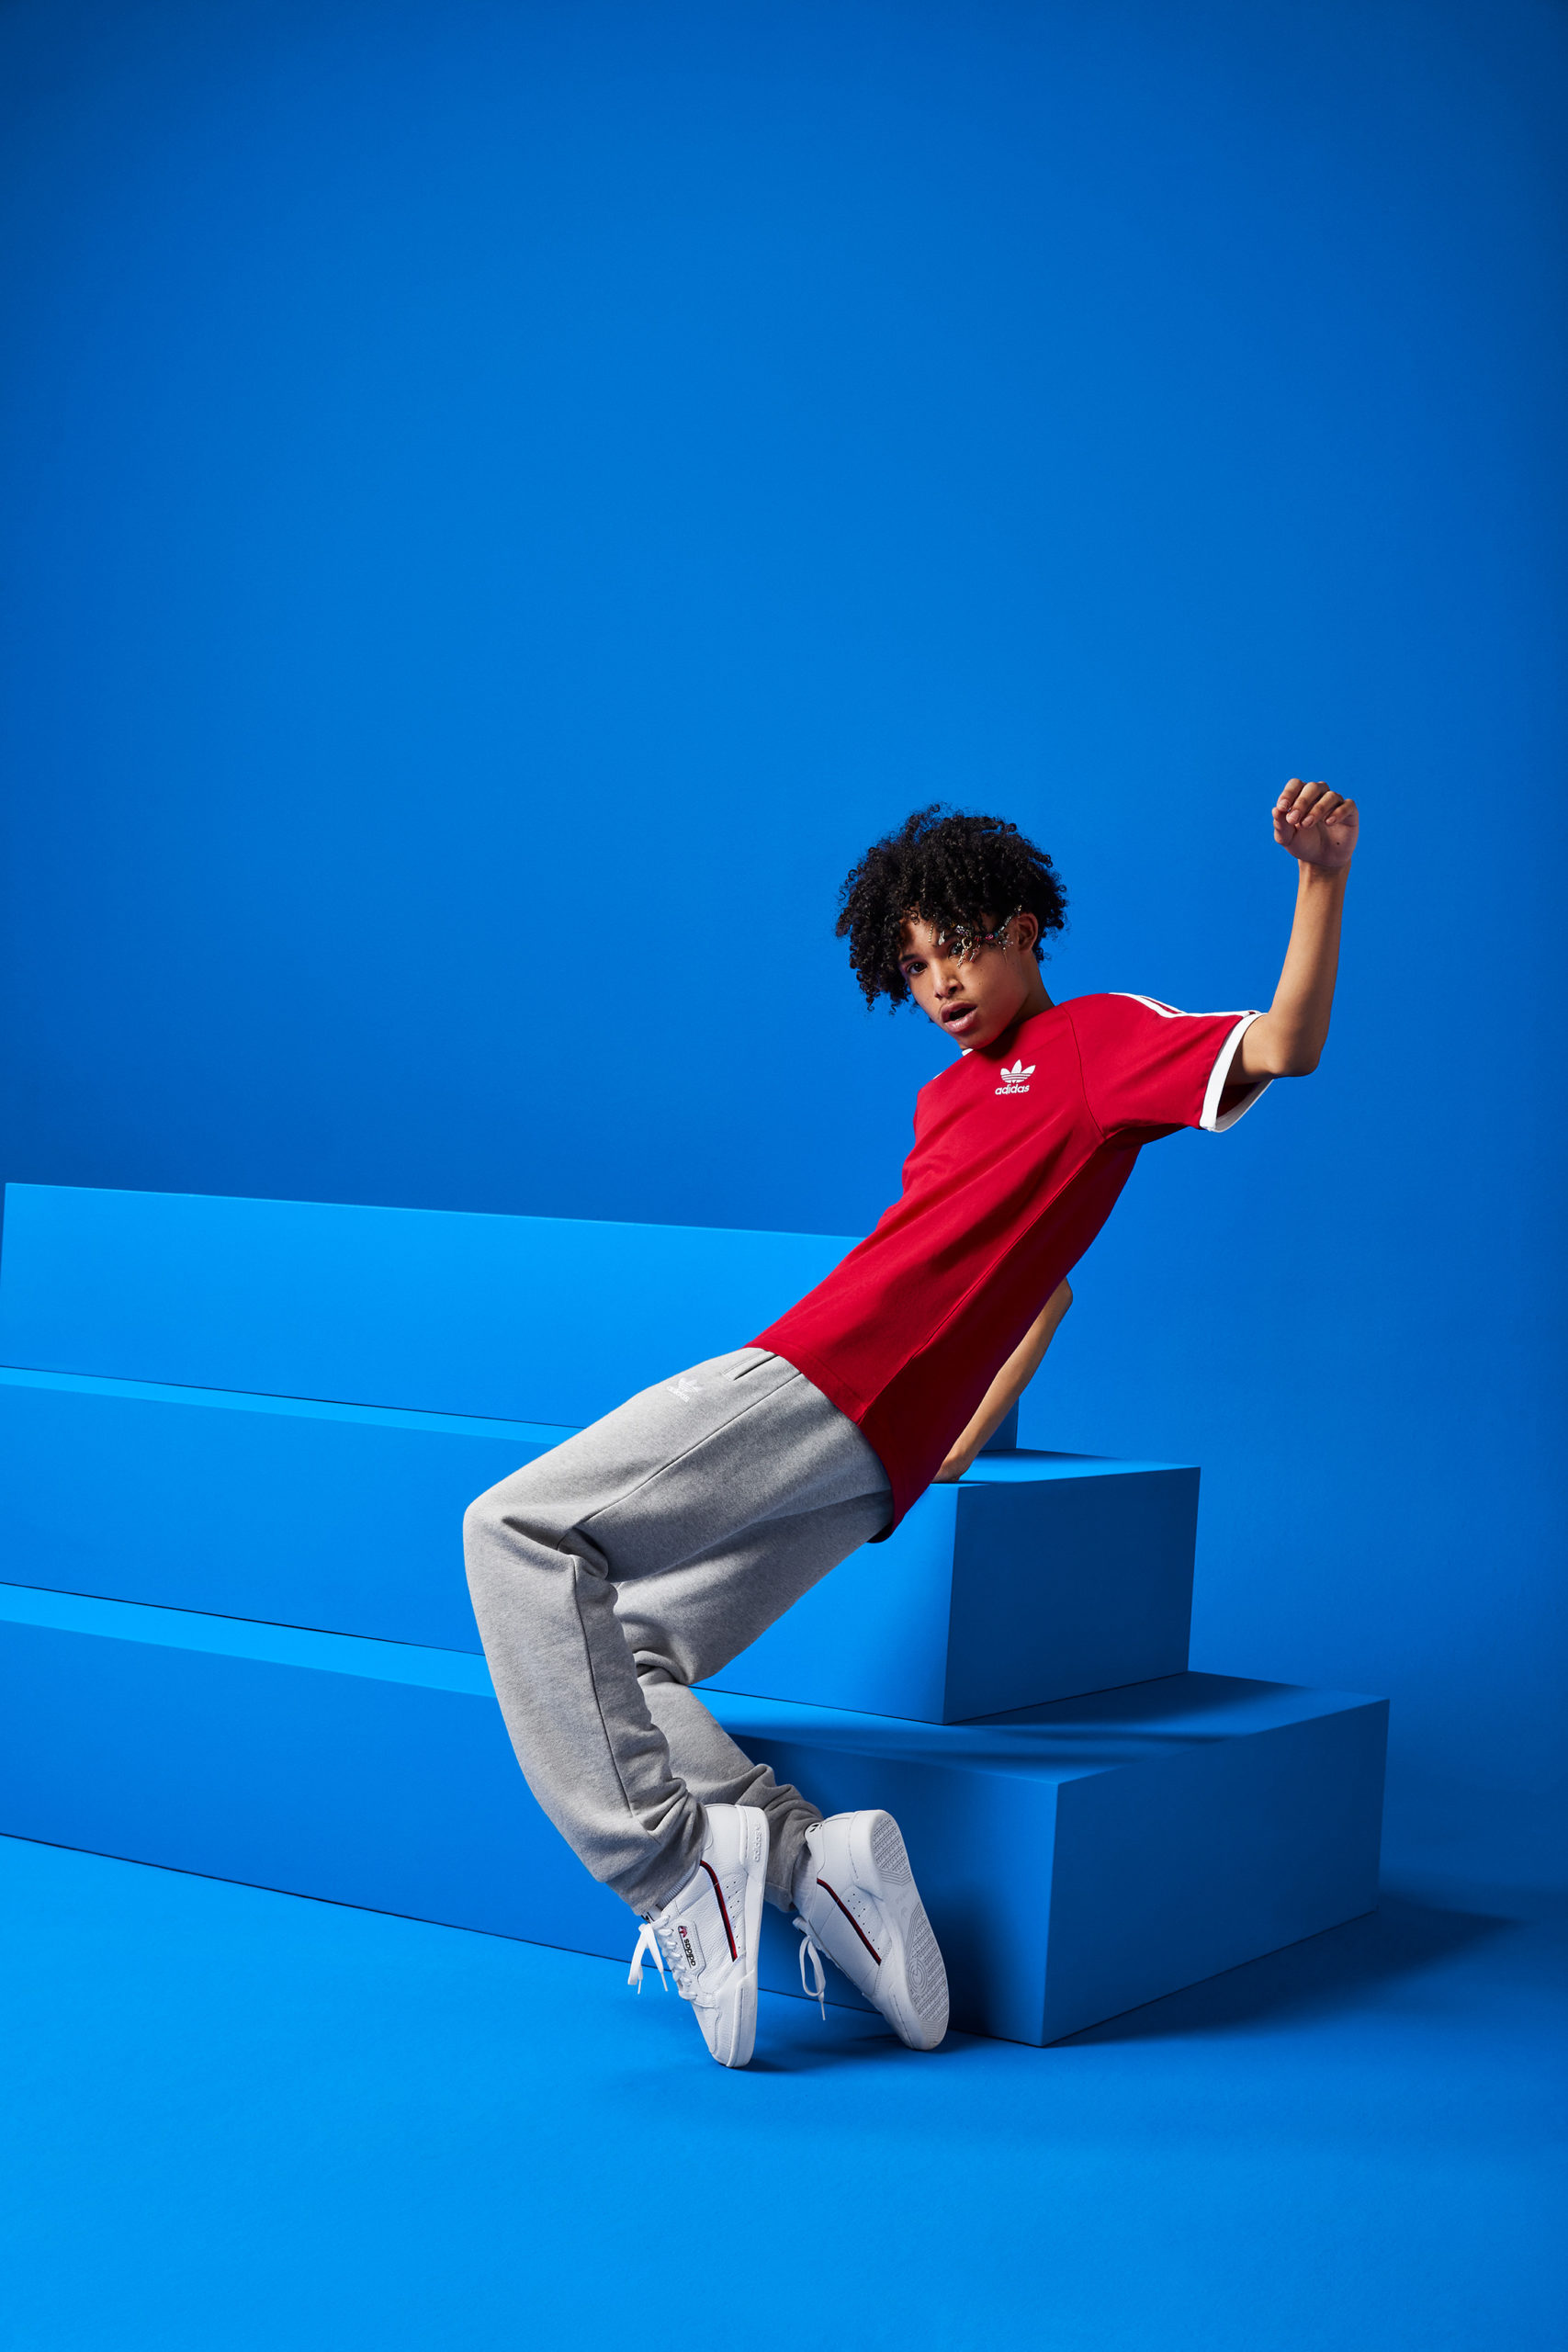 A guy wearing a red shirt dances in front of a blue set with a stack of stair-stepped boxes.